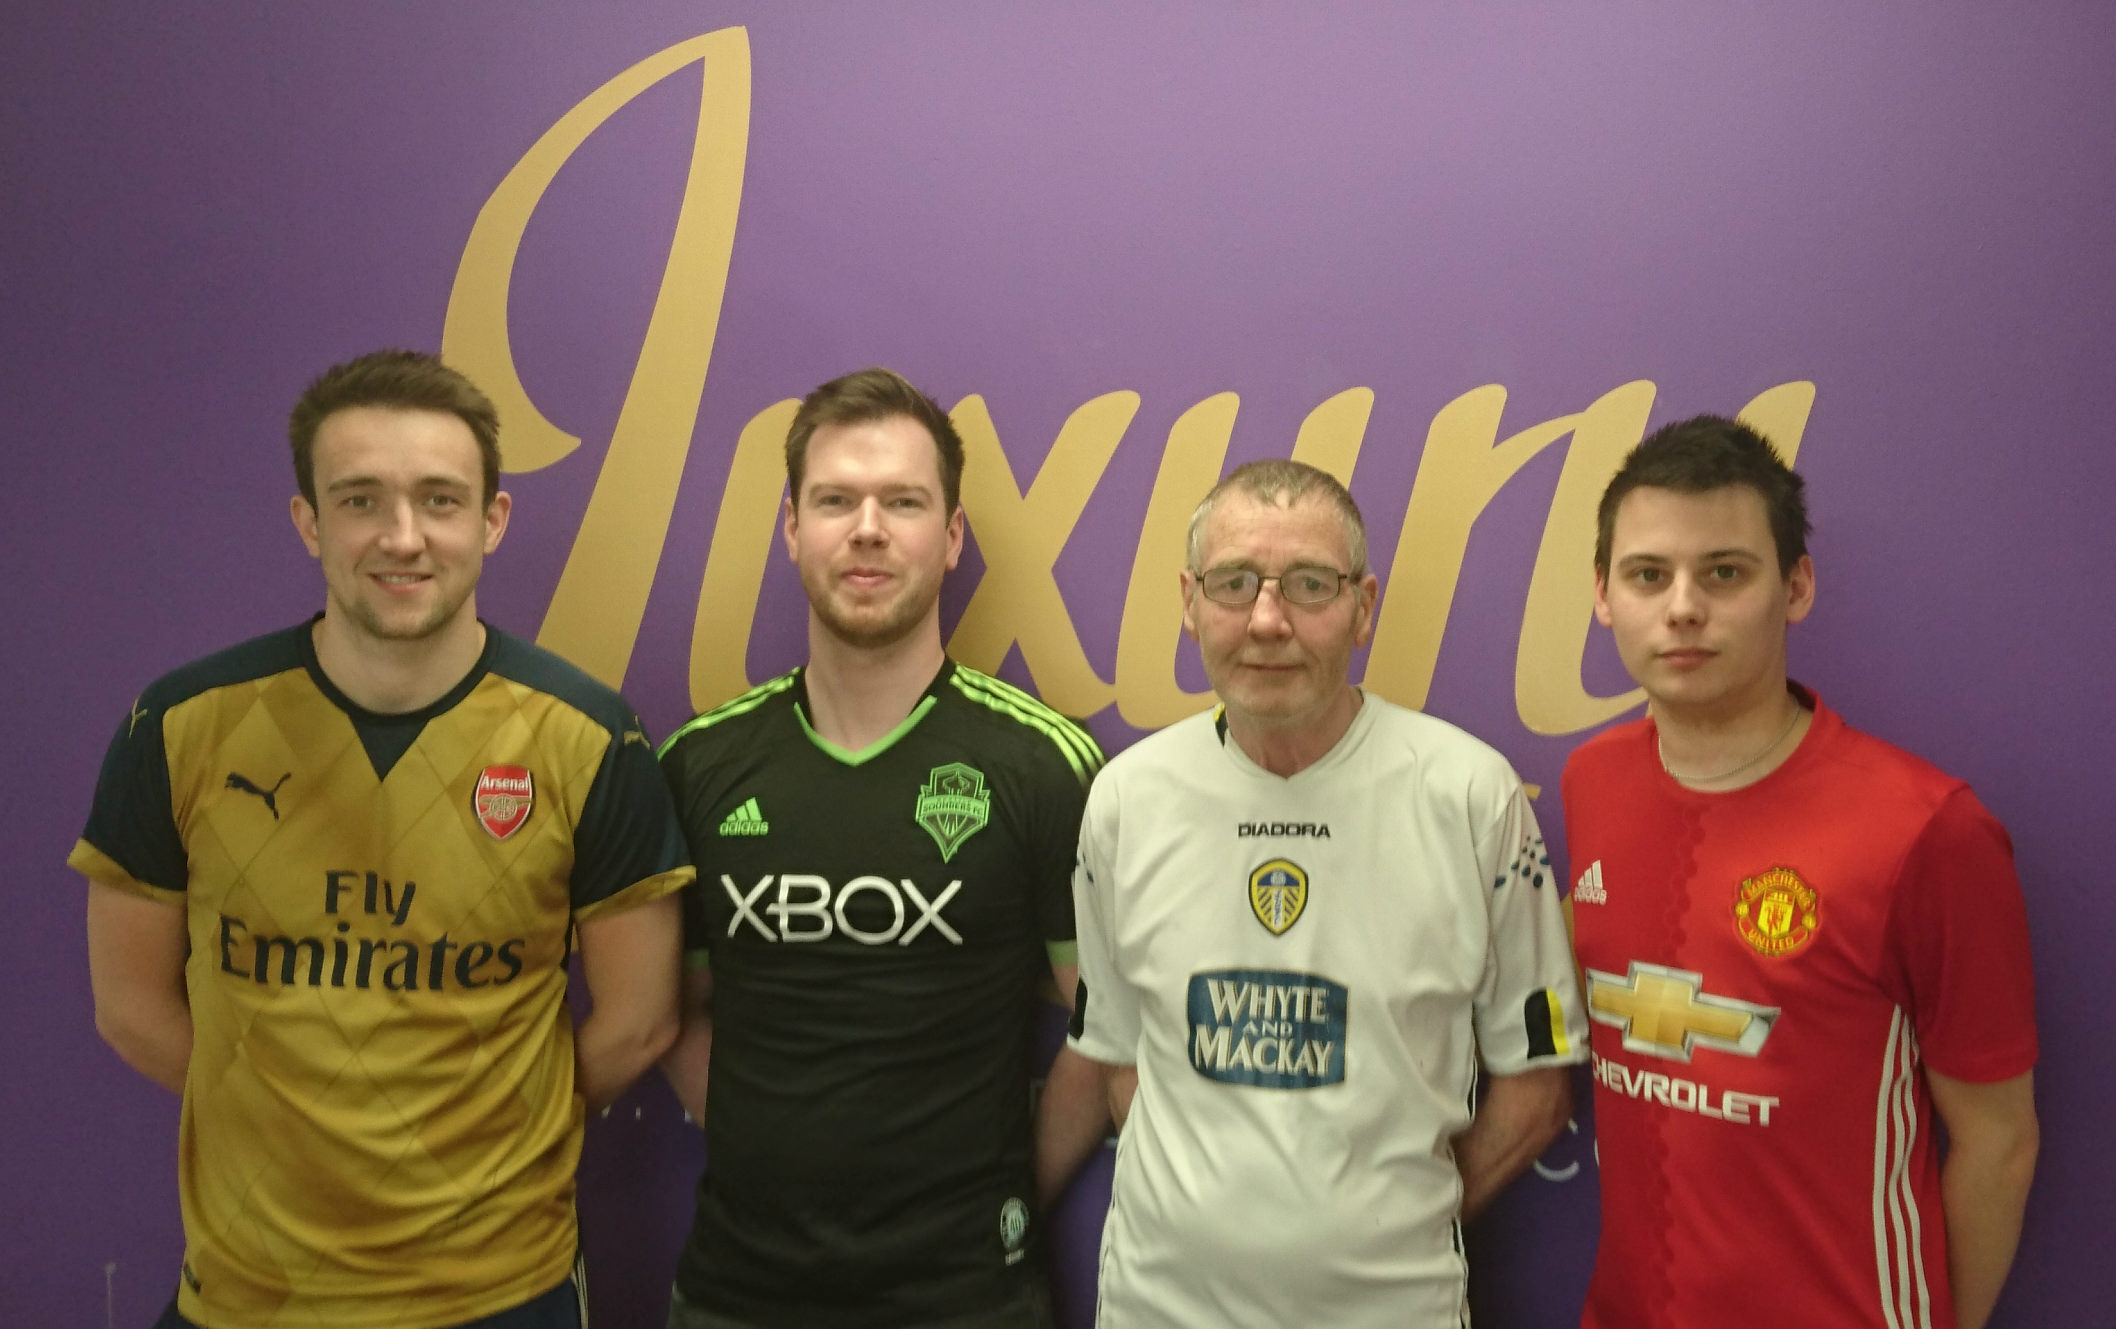 Luxury Flooring Supports Football Shirt Friday